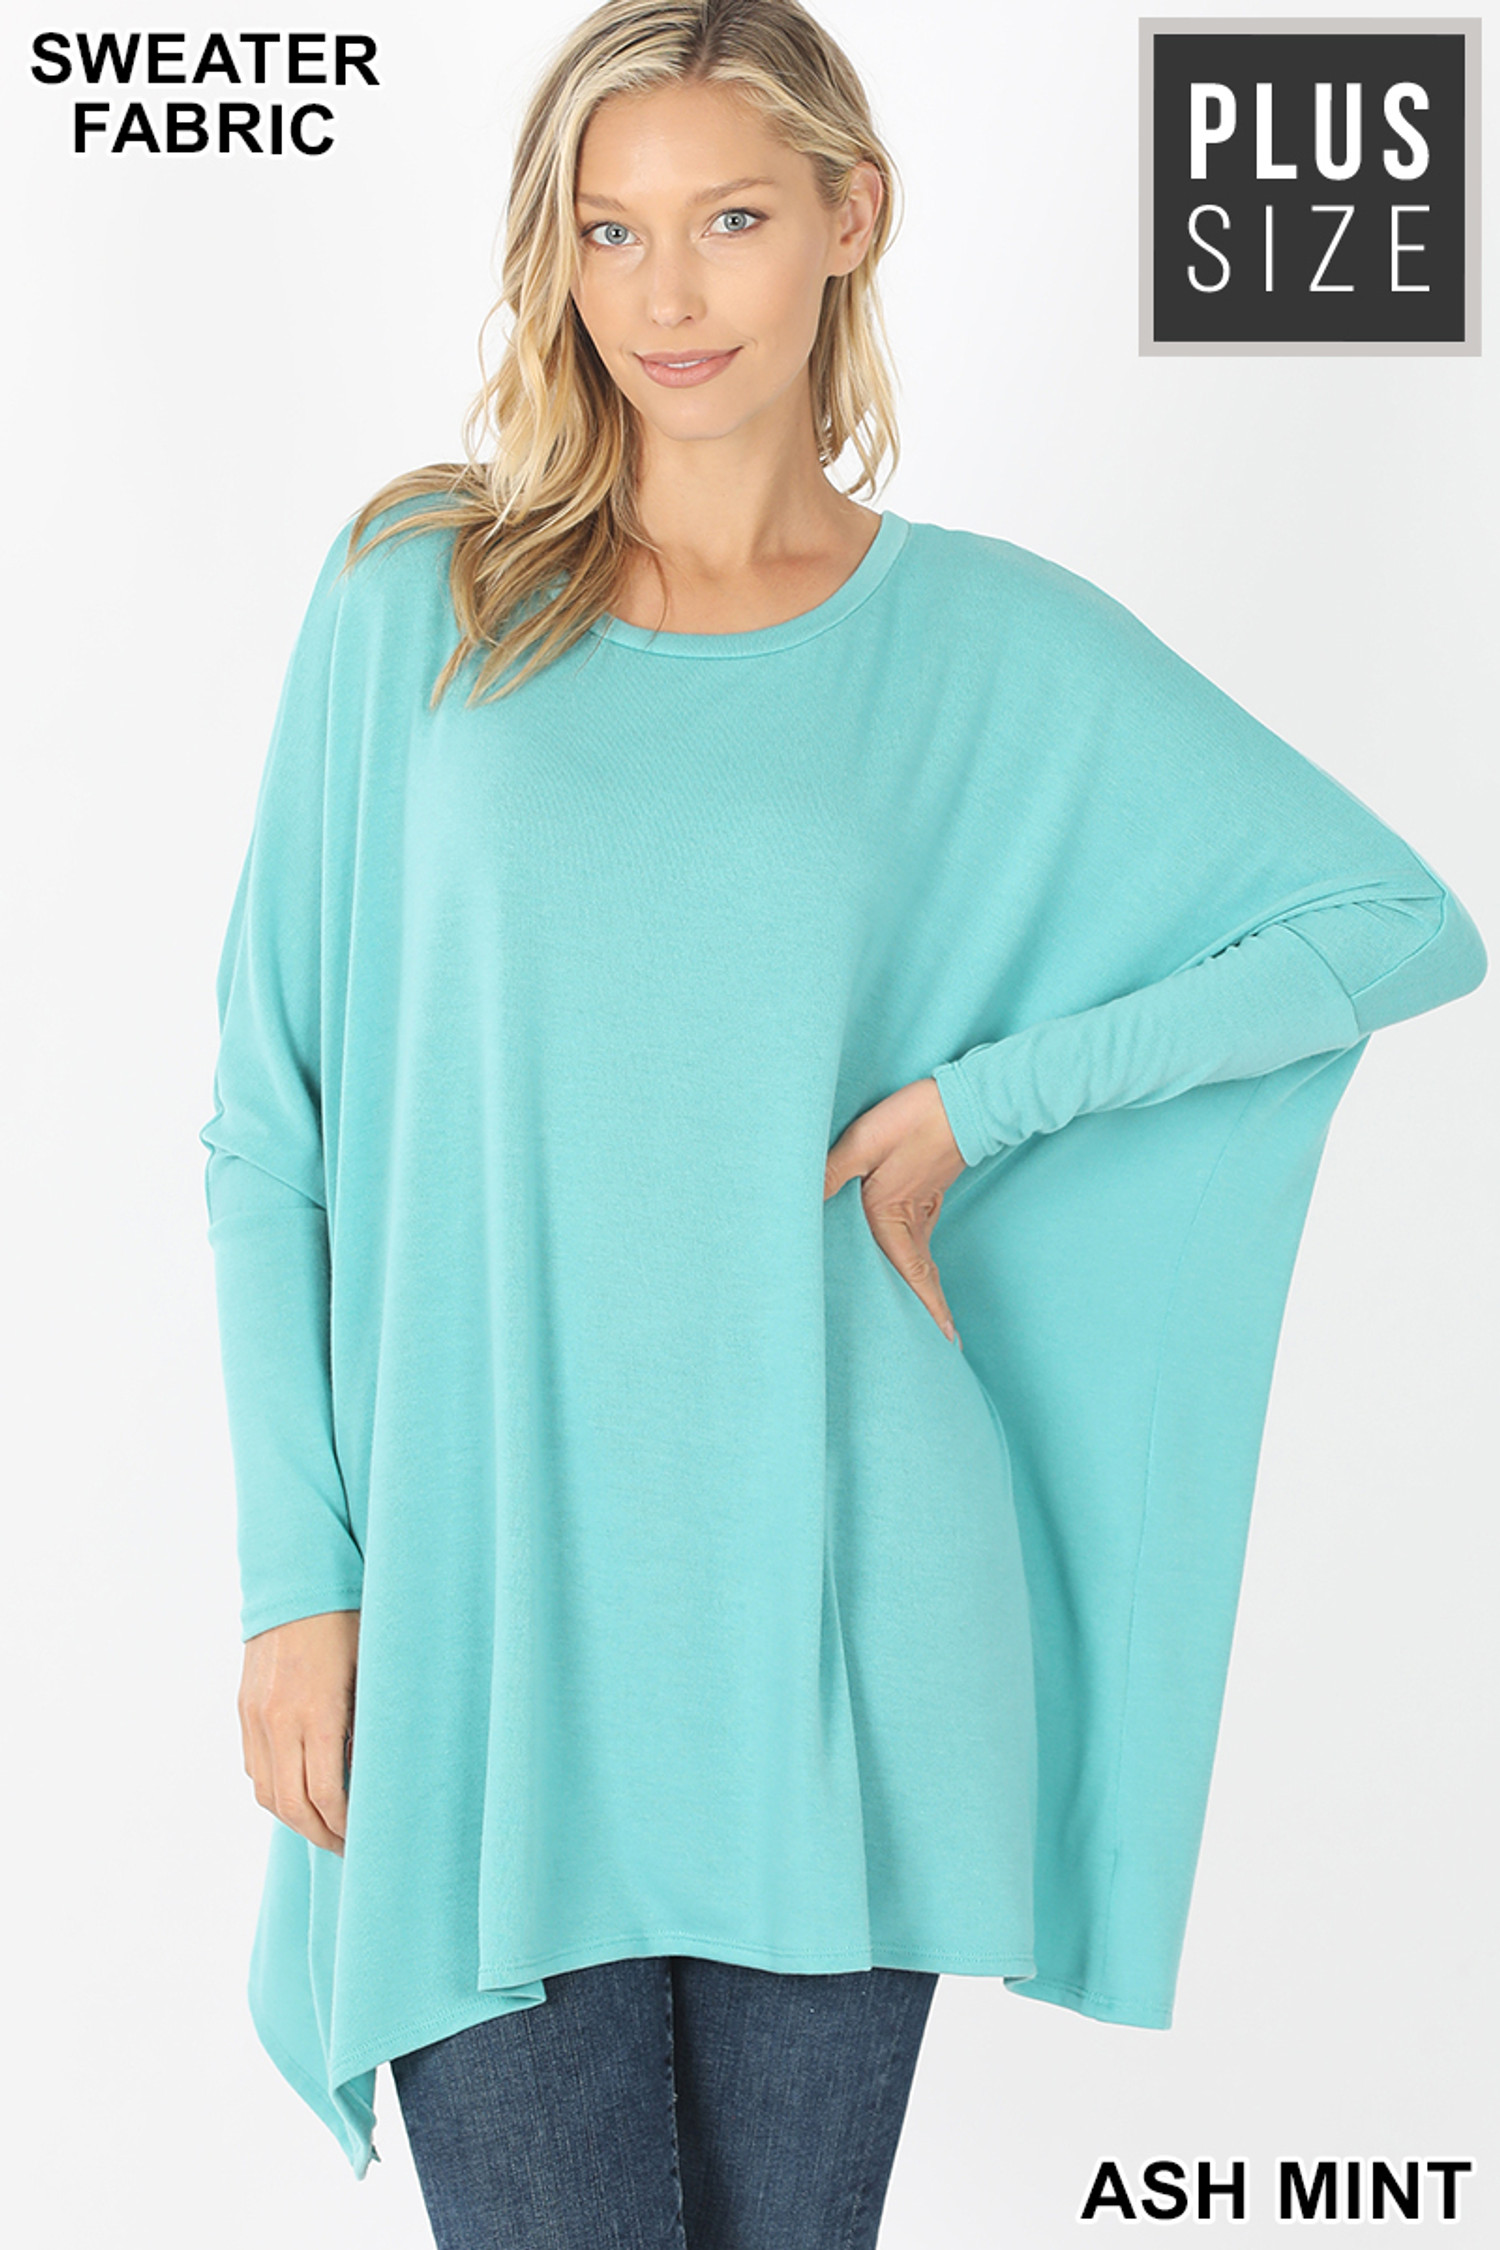 Front view of Ash Mint Oversized Round Neck Poncho Plus Size Sweater